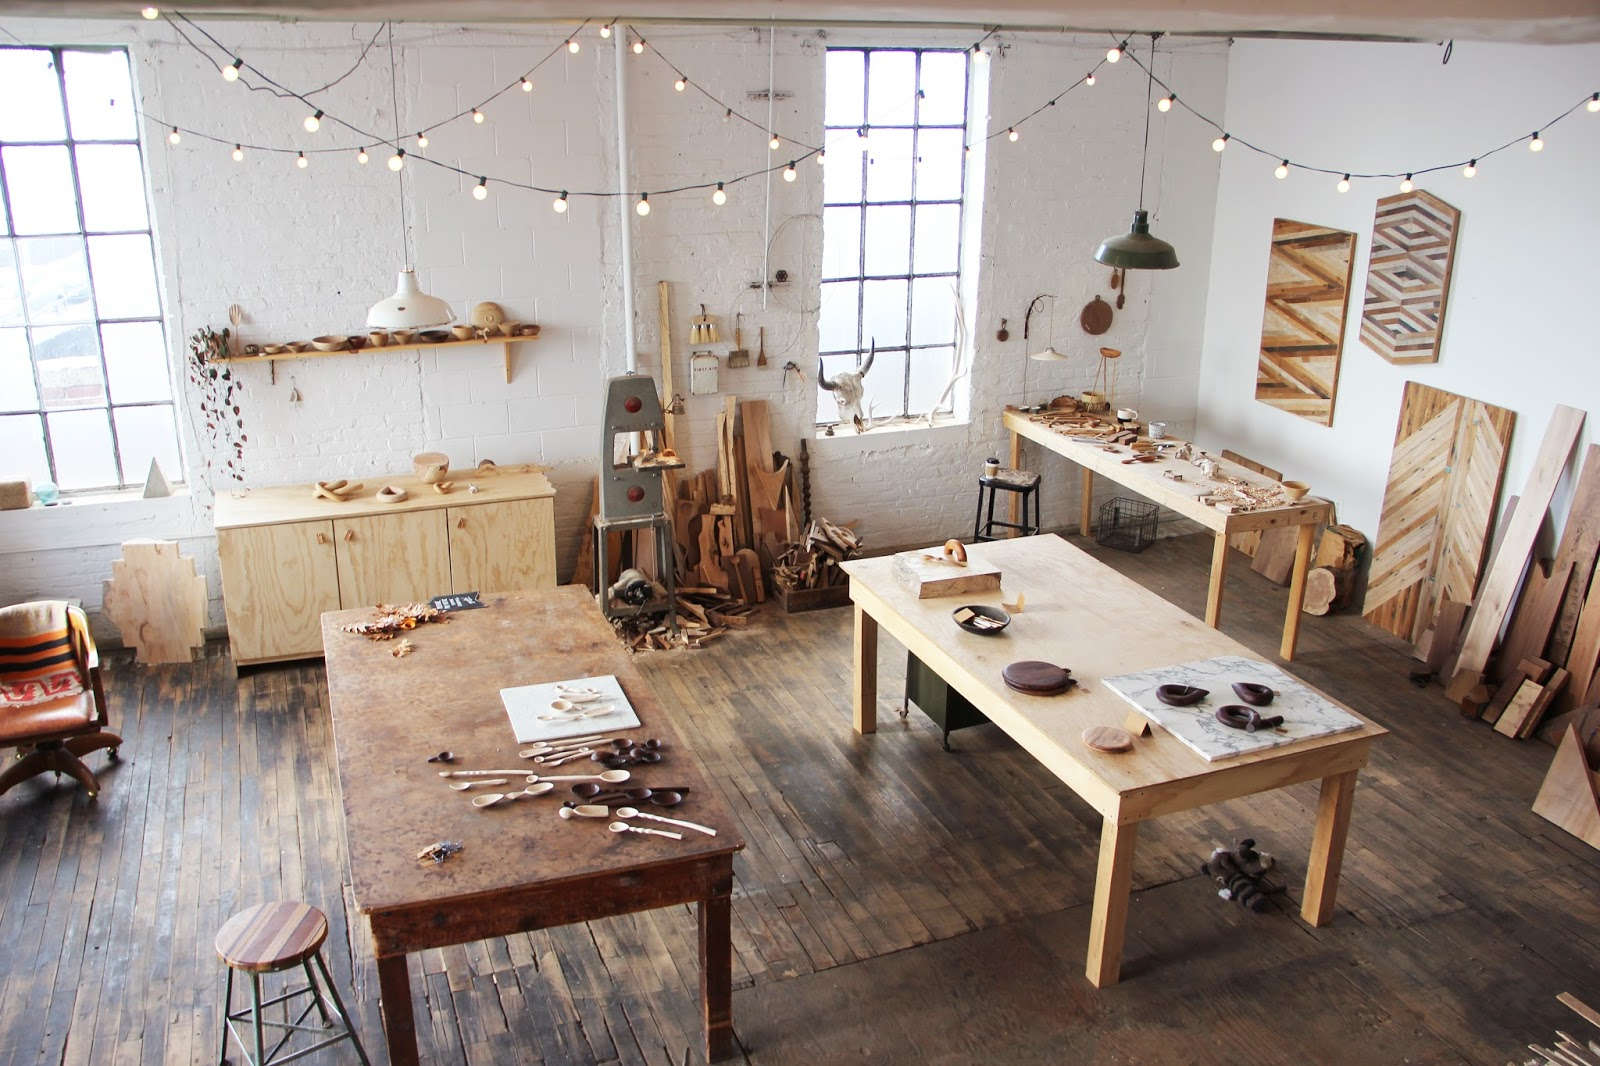 Ariele Alasko: Creating Stunning Functional Furniture from Reclaimed Wood